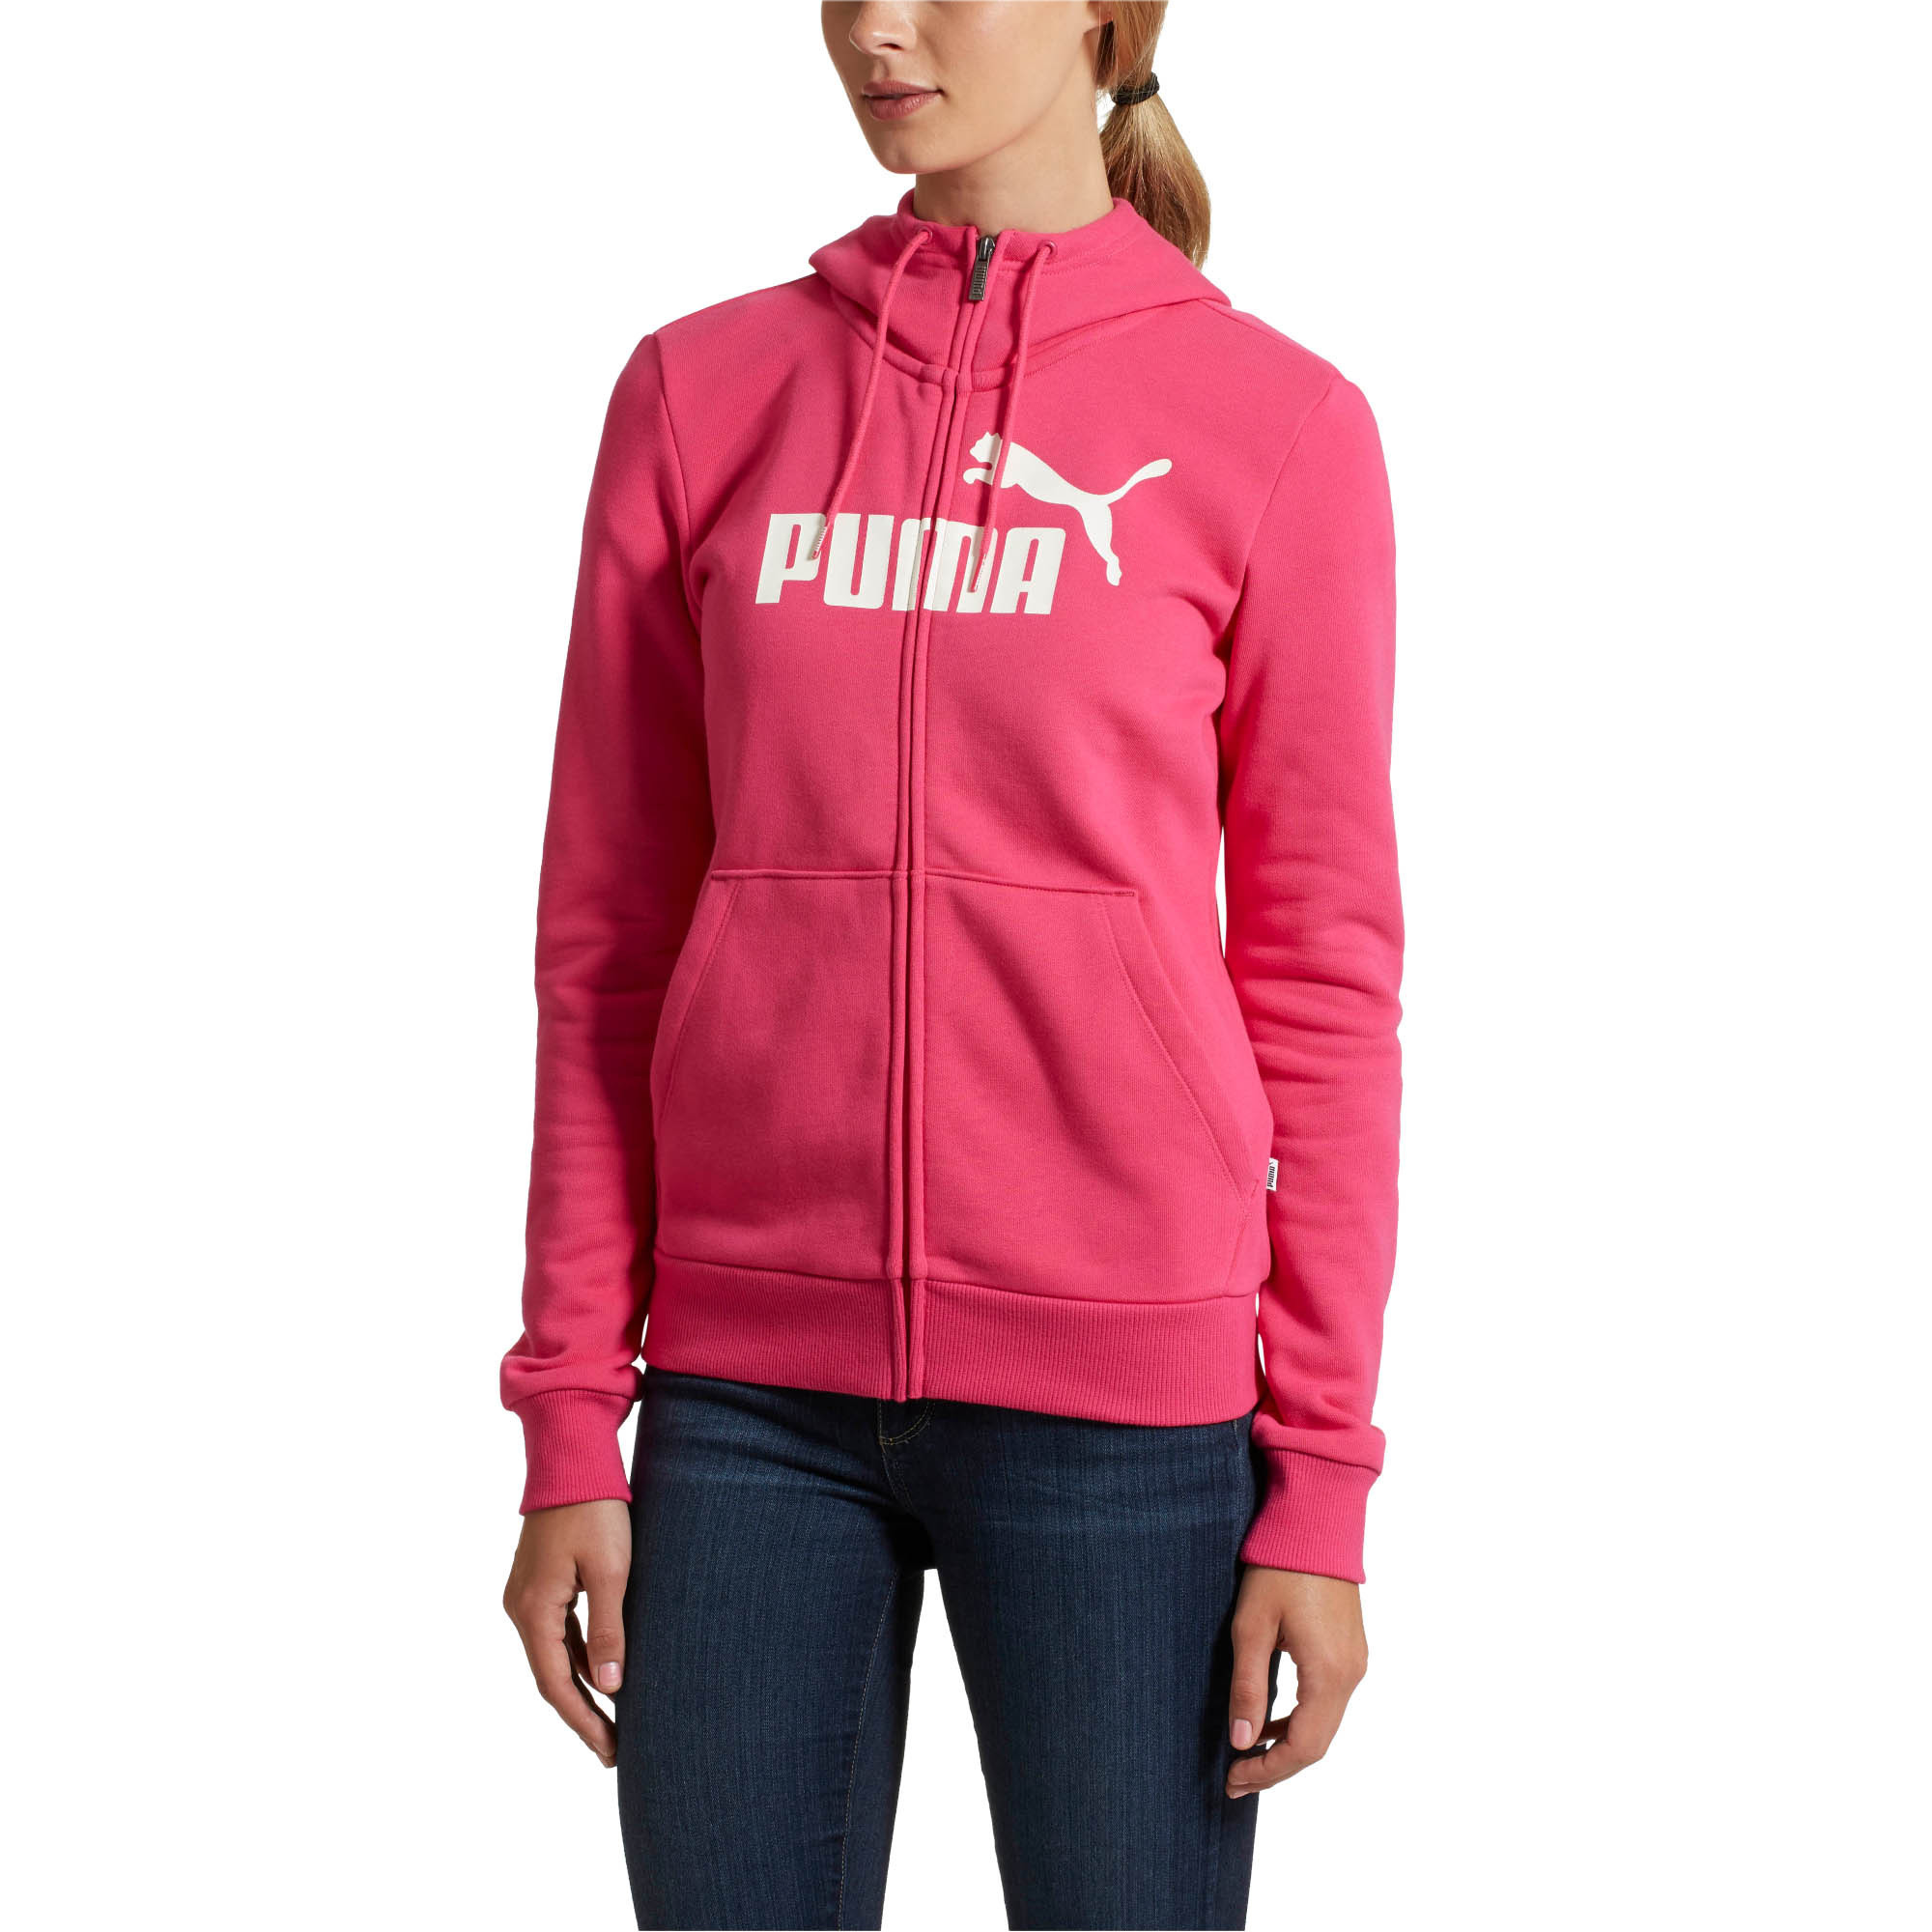 PUMA-Women-039-s-Essential-Fleece-Hooded-Jacket-Women-Sweat-Basics thumbnail 18